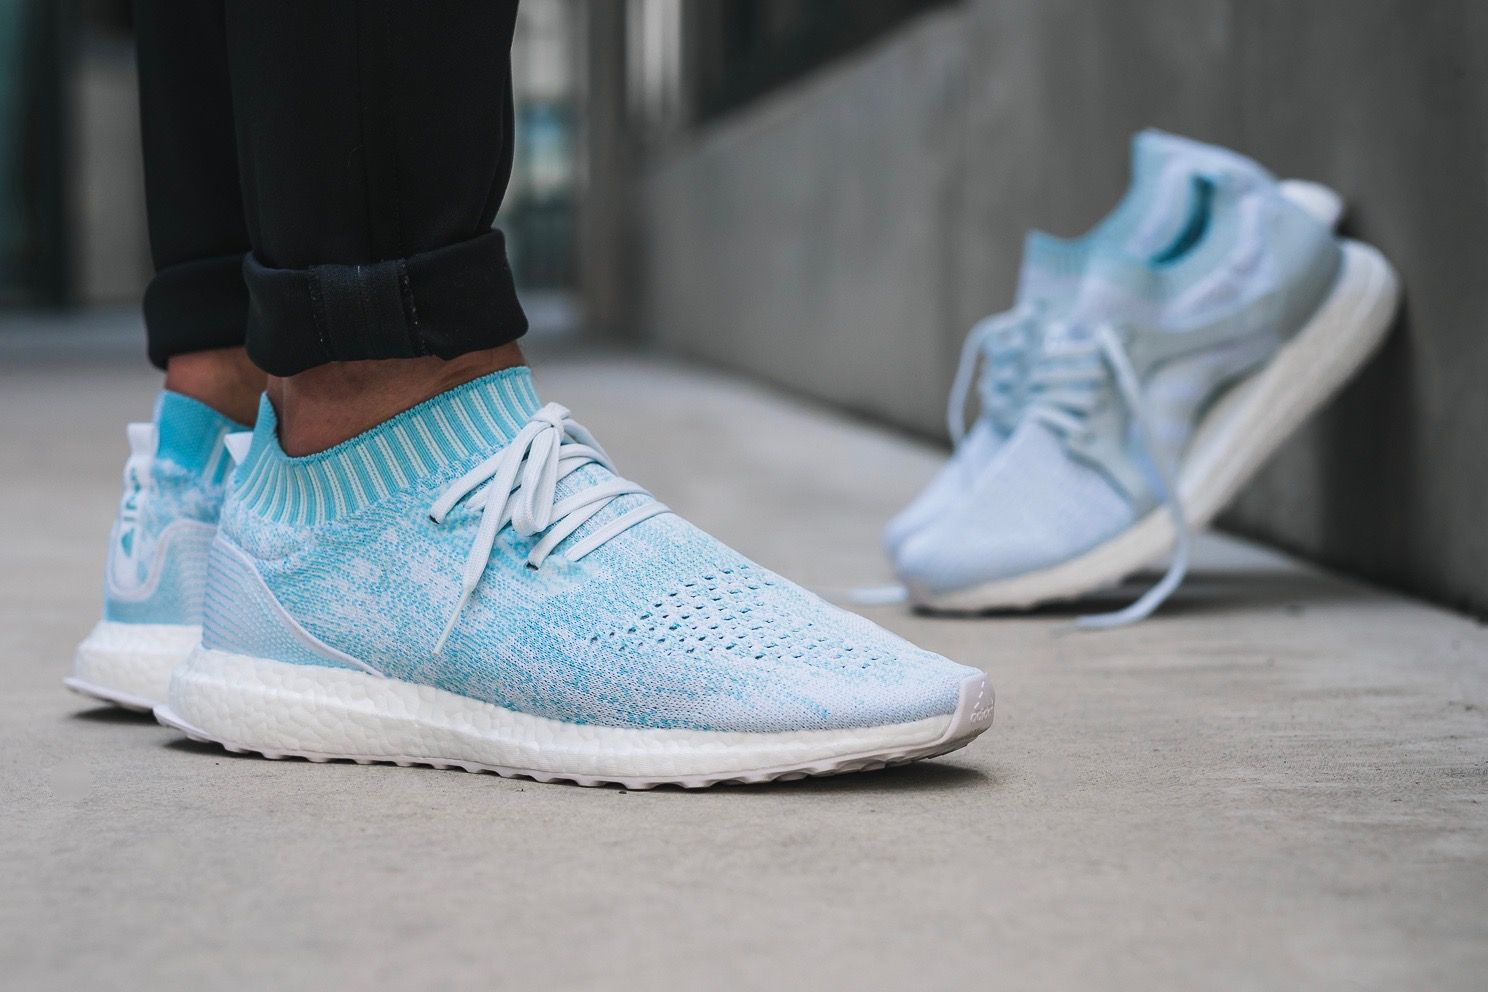 9c835dfa8 adidas x Parley Ultra Boost - Solebox On Foot Preview - EU Kicks  Sneaker  Magazine